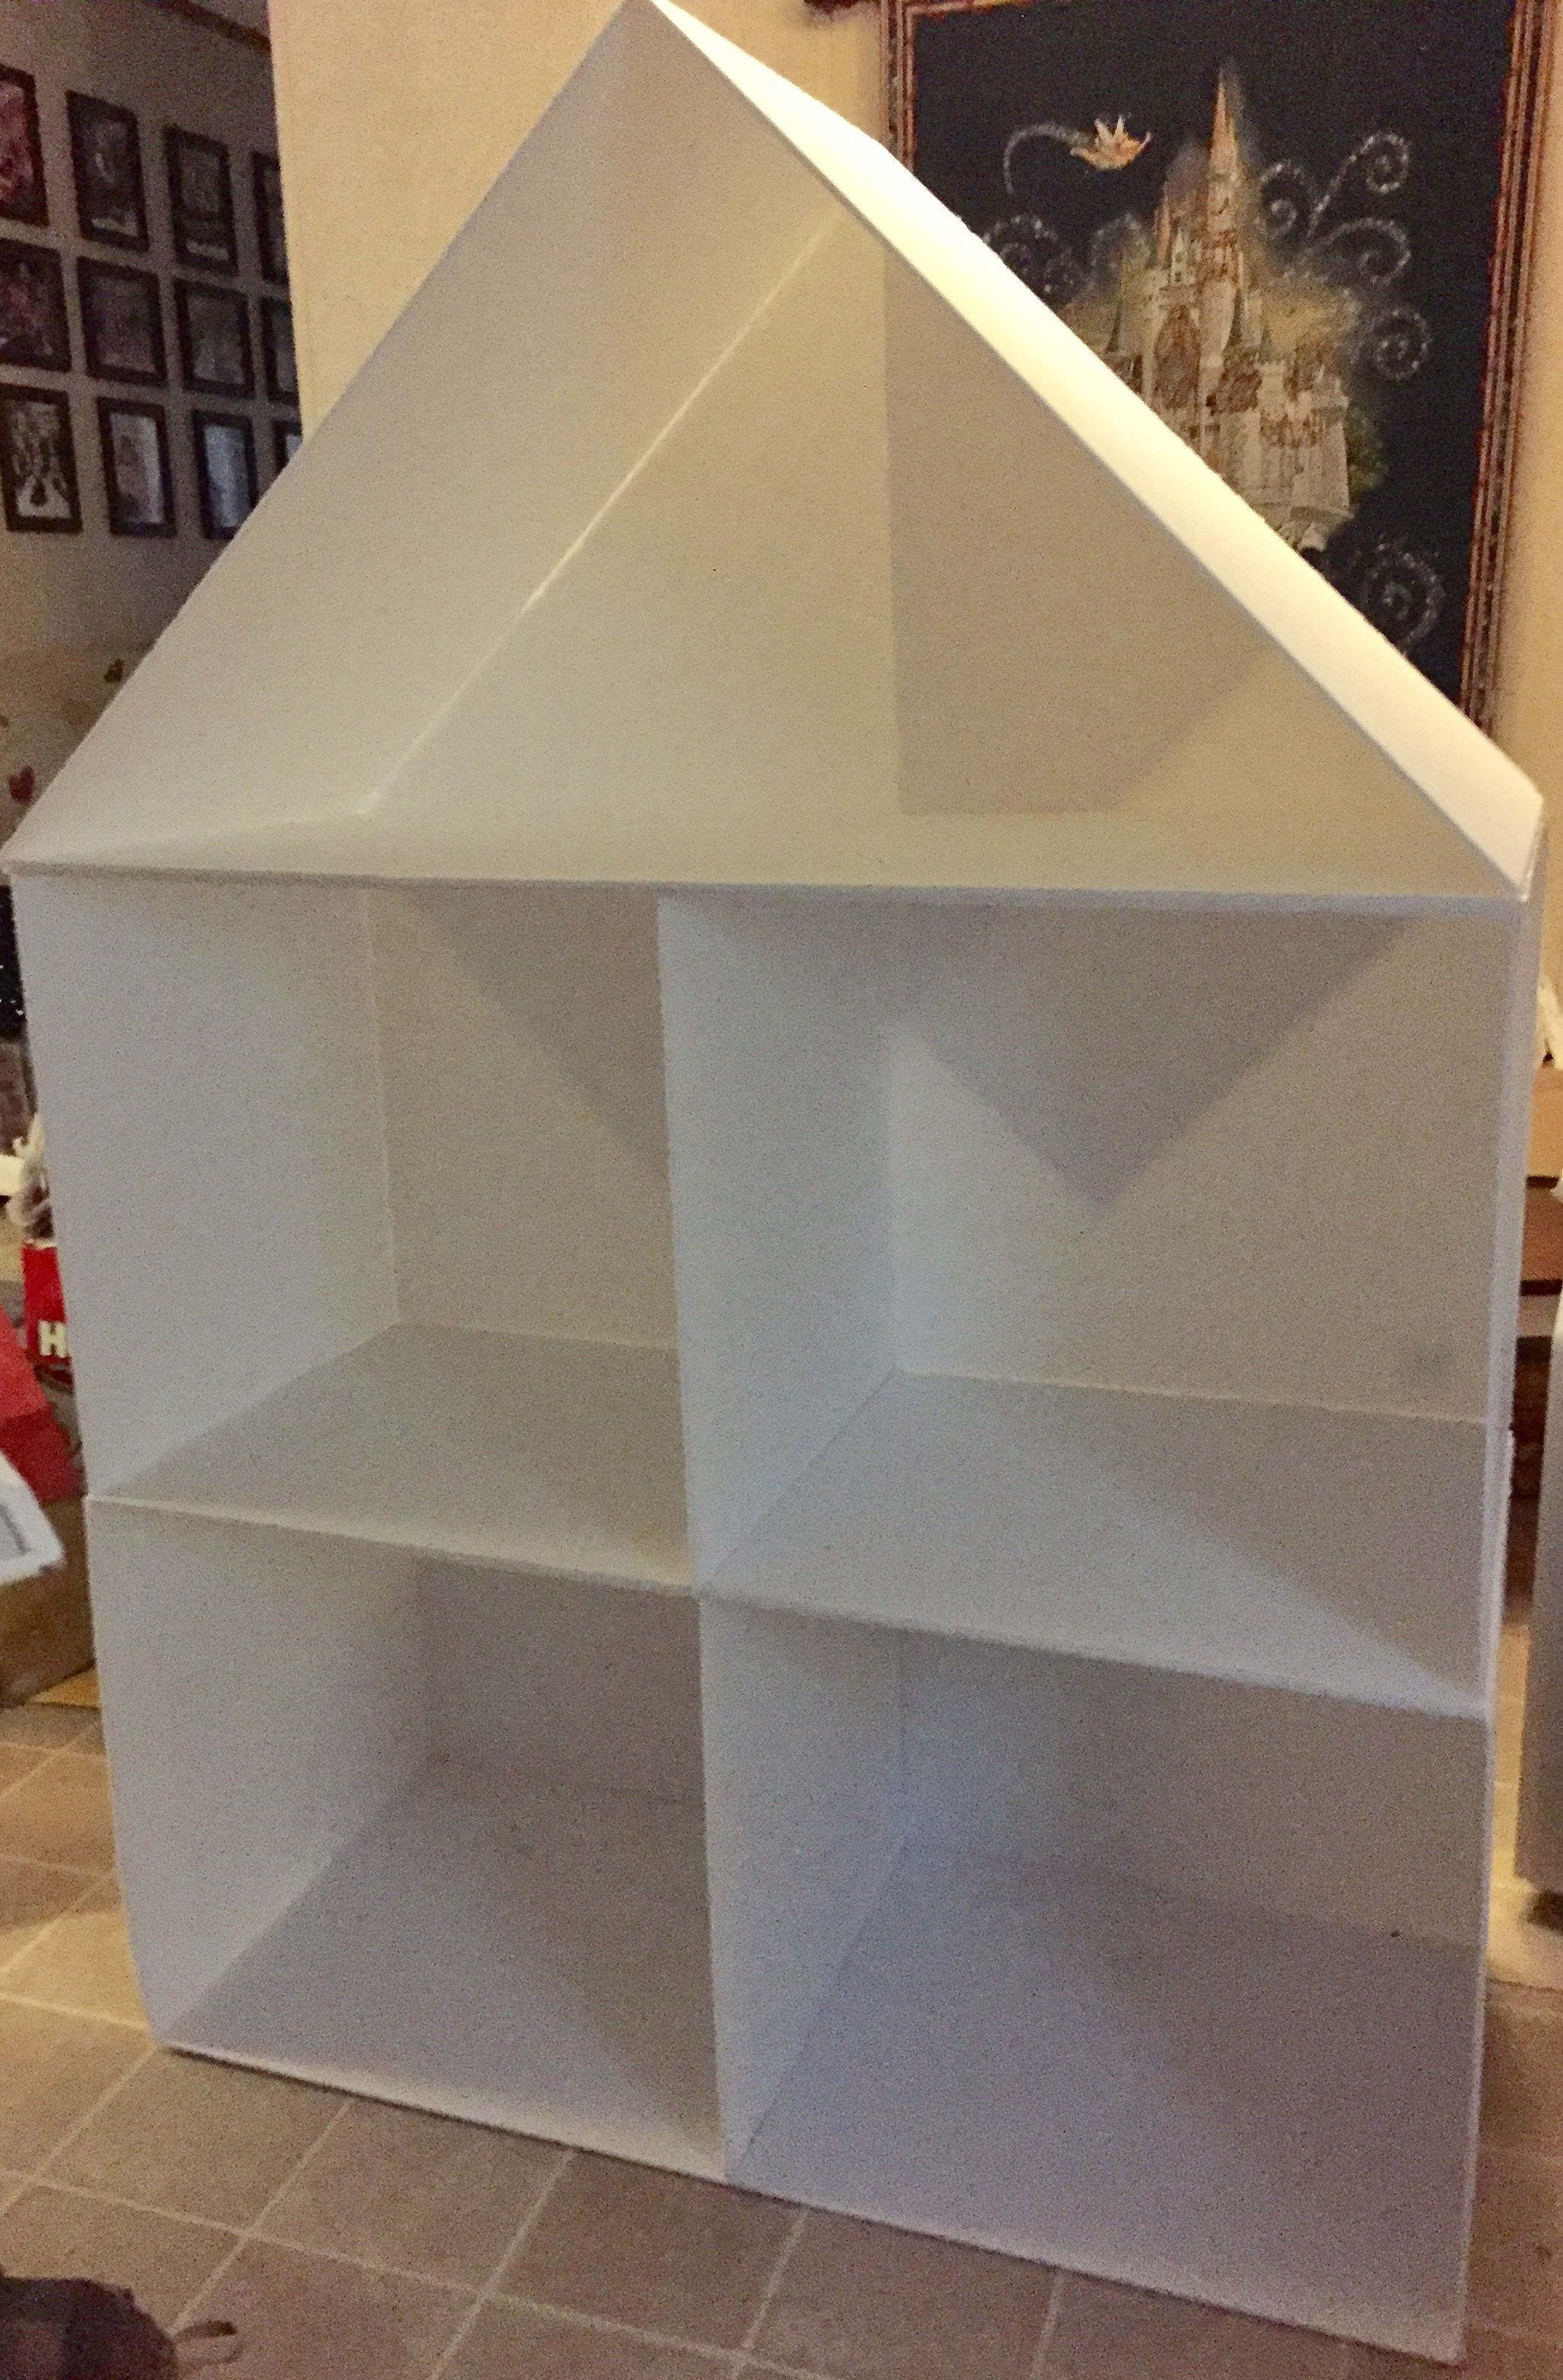 18 Inch Dollhouse Made From Dollar Tree